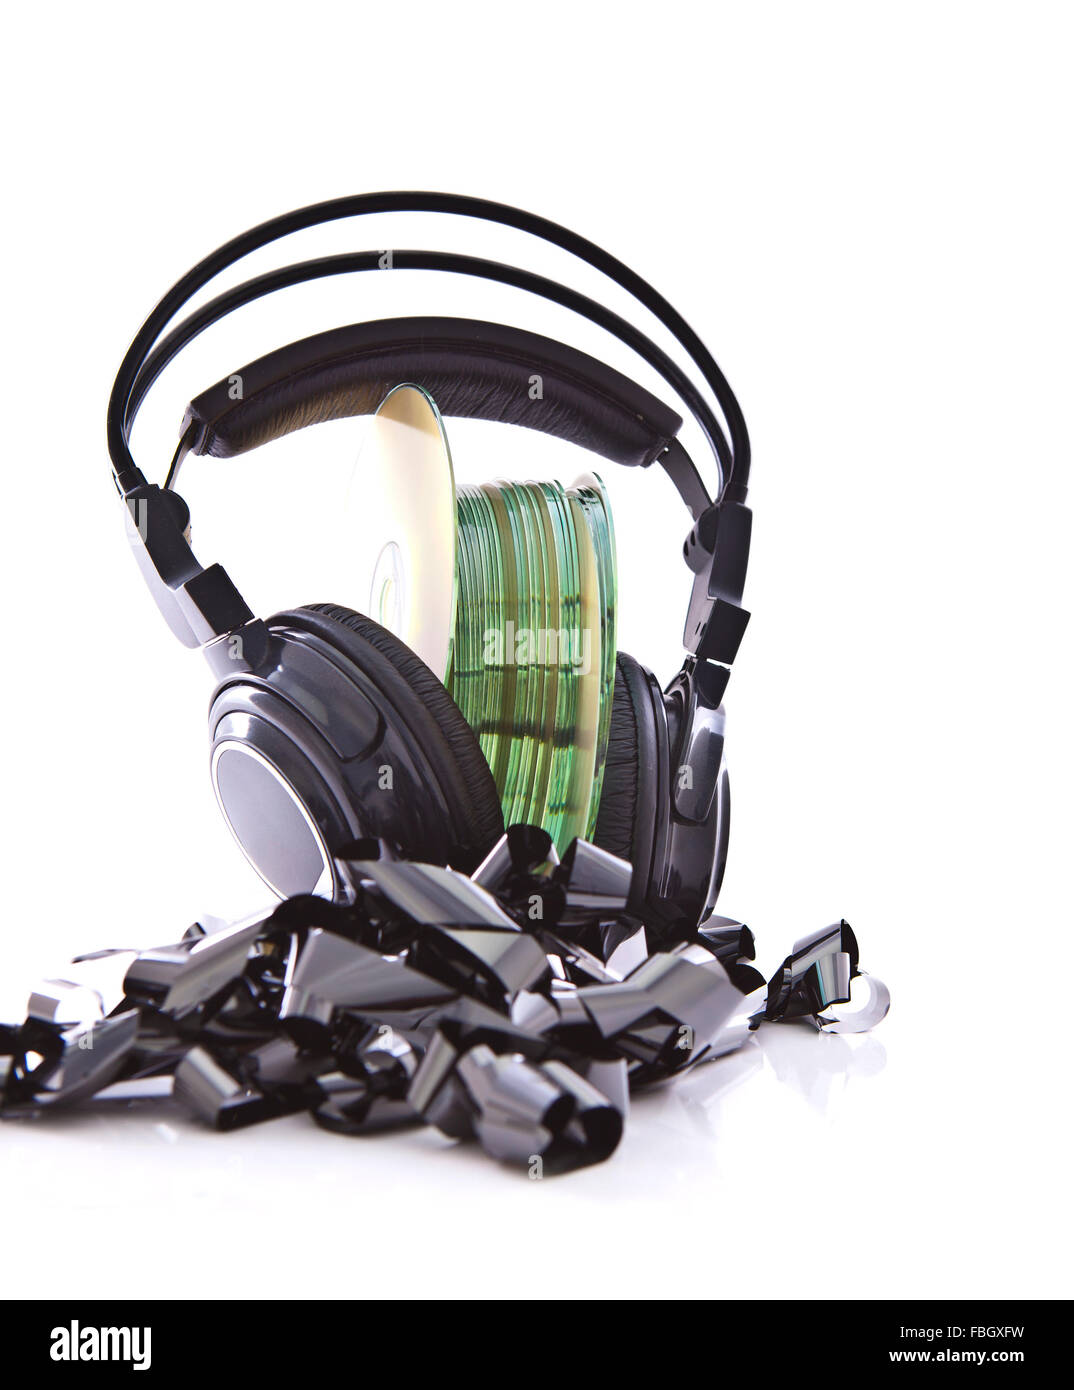 Stack of CDs with HI-Fi headphones on vintage reel of audio tape on white background - Stock Image